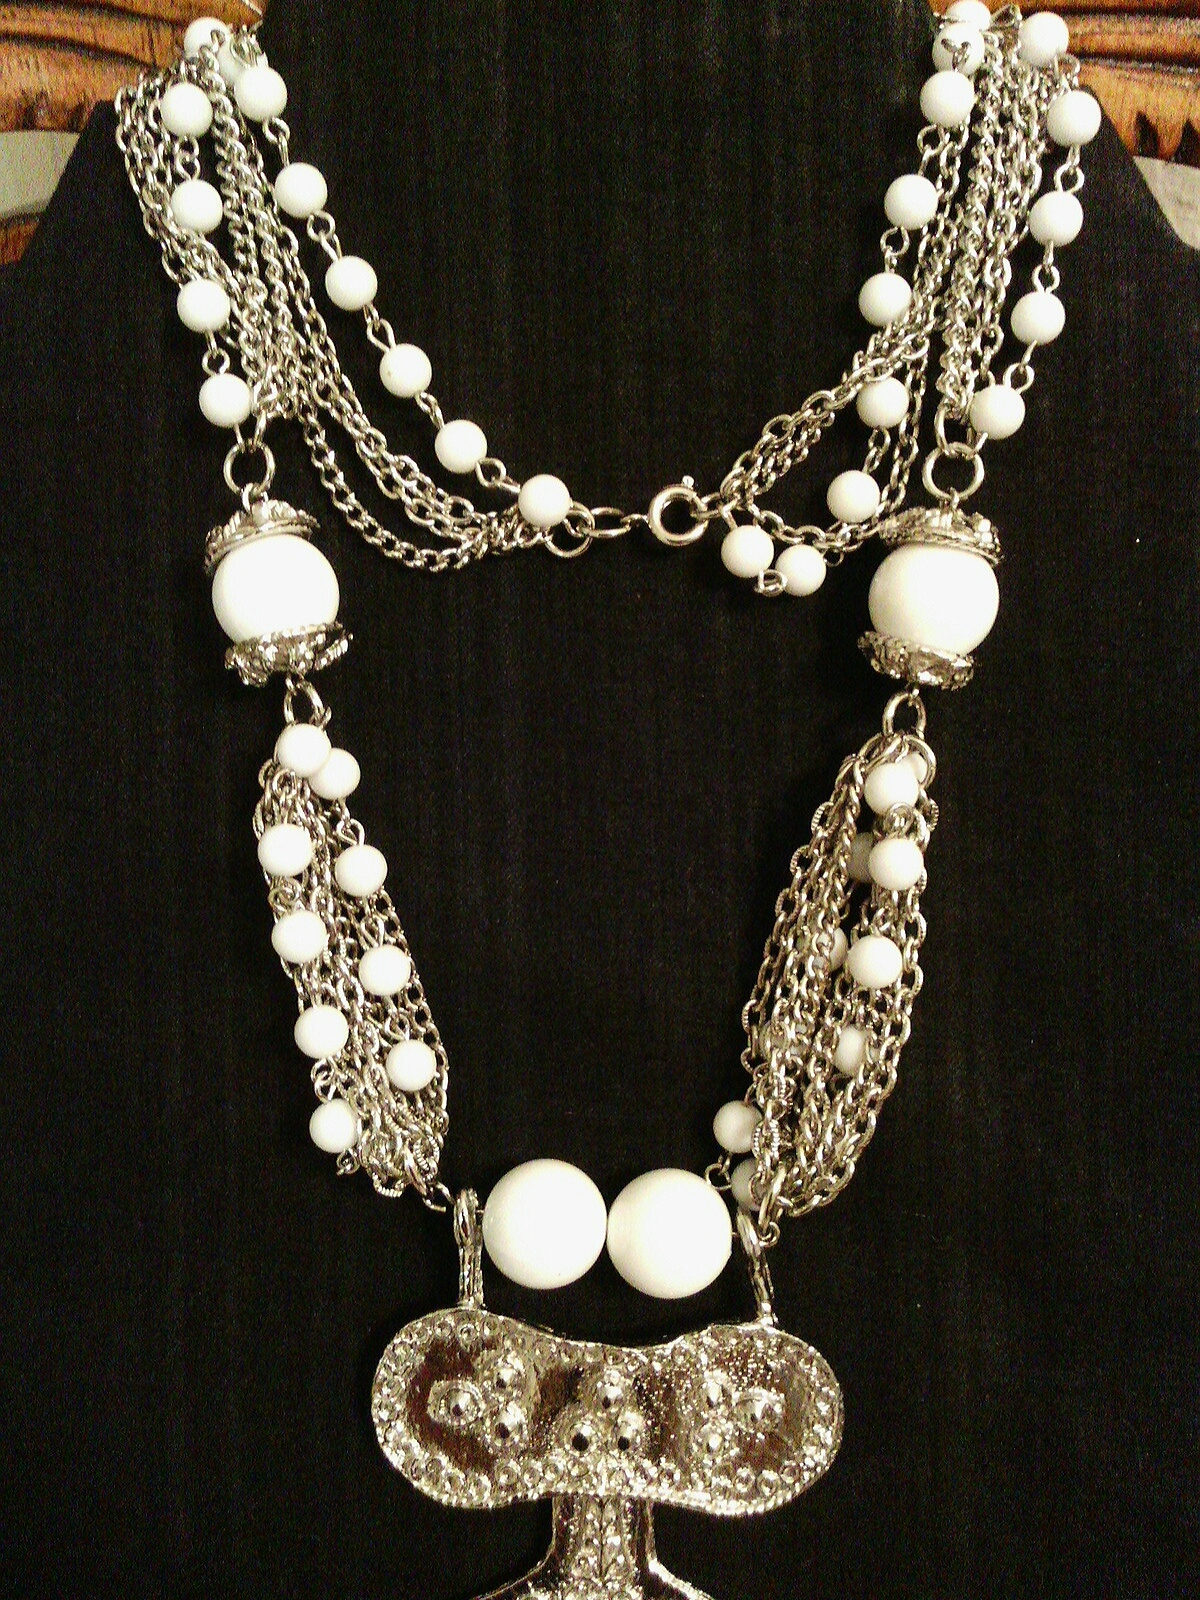 Vintage Etruscan Revival Statement Necklace